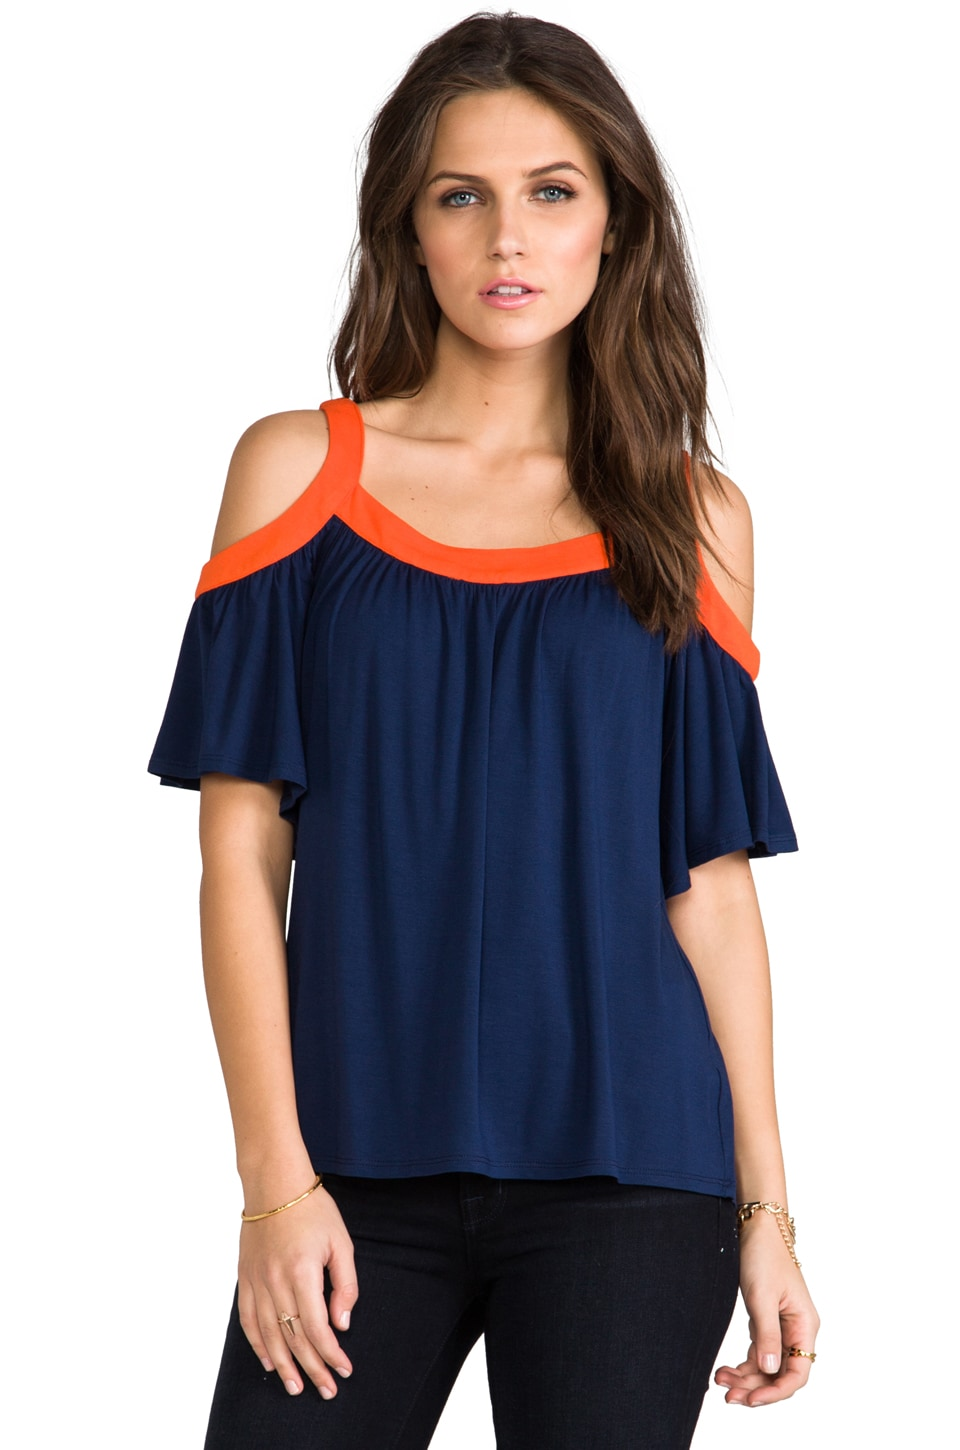 James & Joy Hillary Open Shoulder Top in Navy